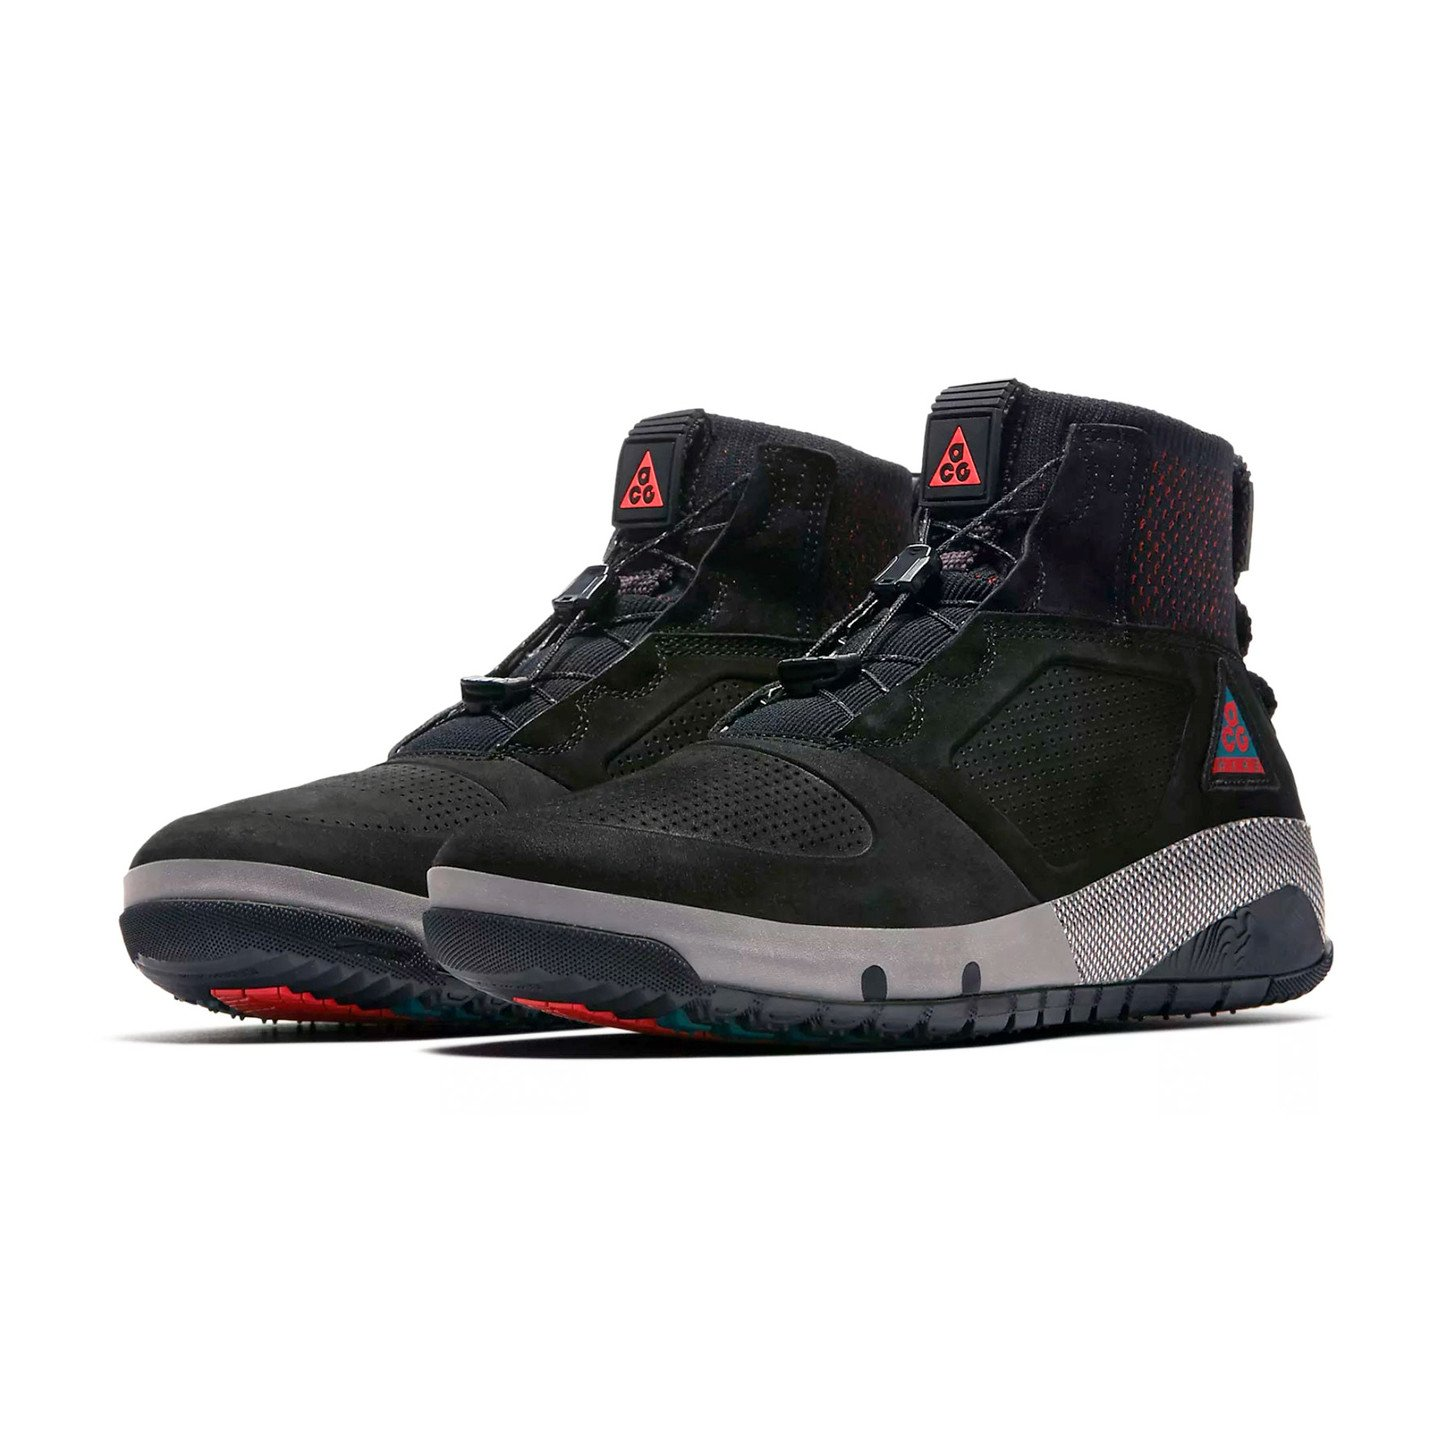 Nike ACG Ruckel Ridge Black / Geode Teal / Habanero Red AQ9333-002